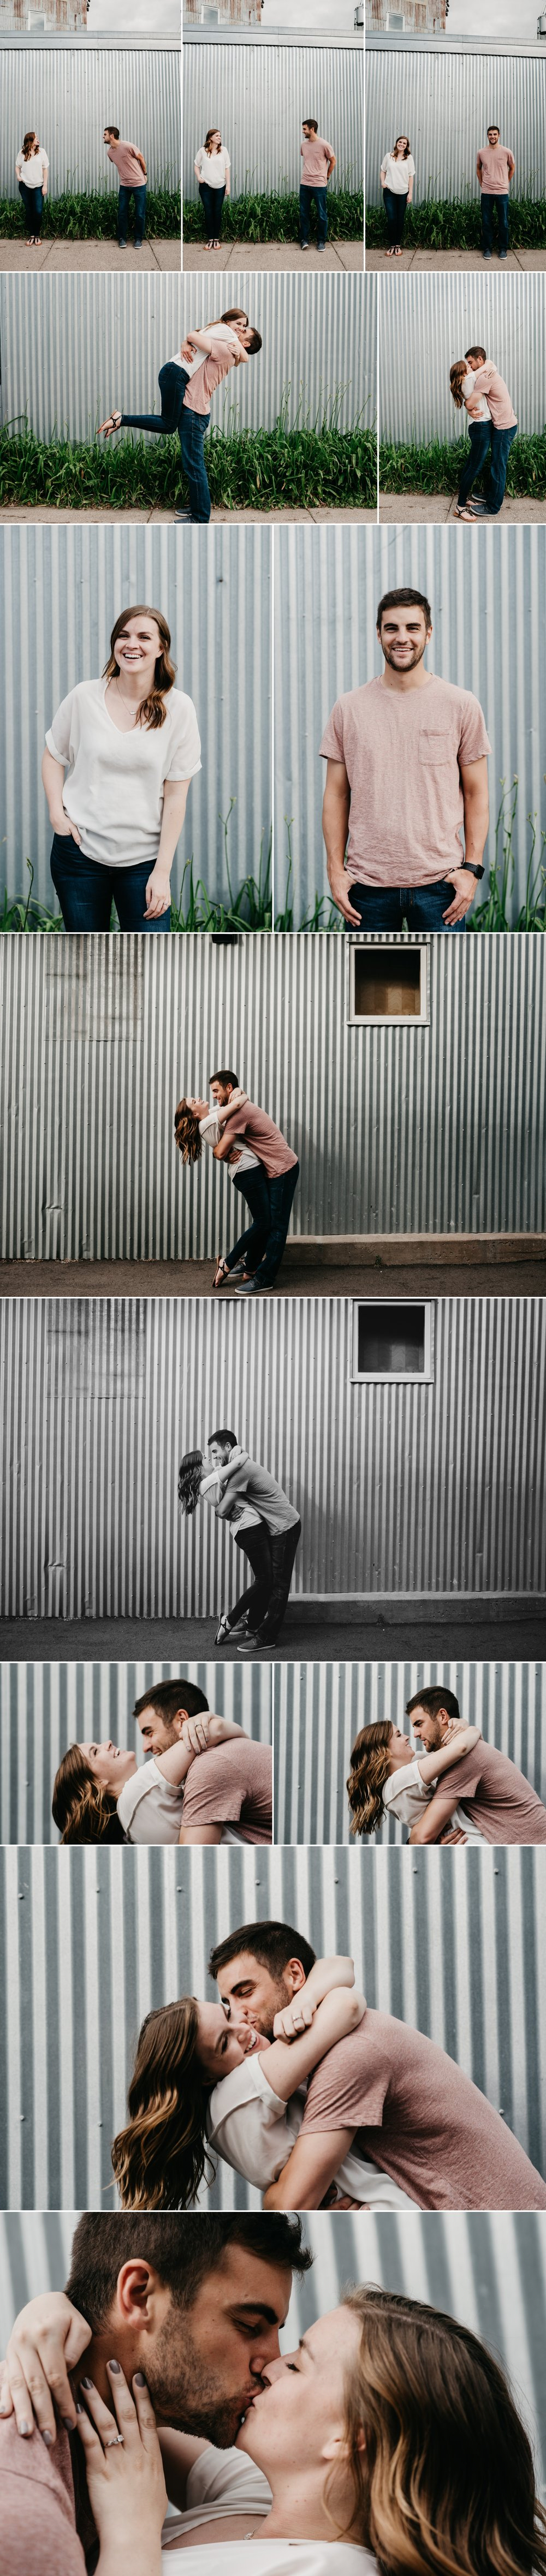 Stillwater Engagement Pictures 3.jpg